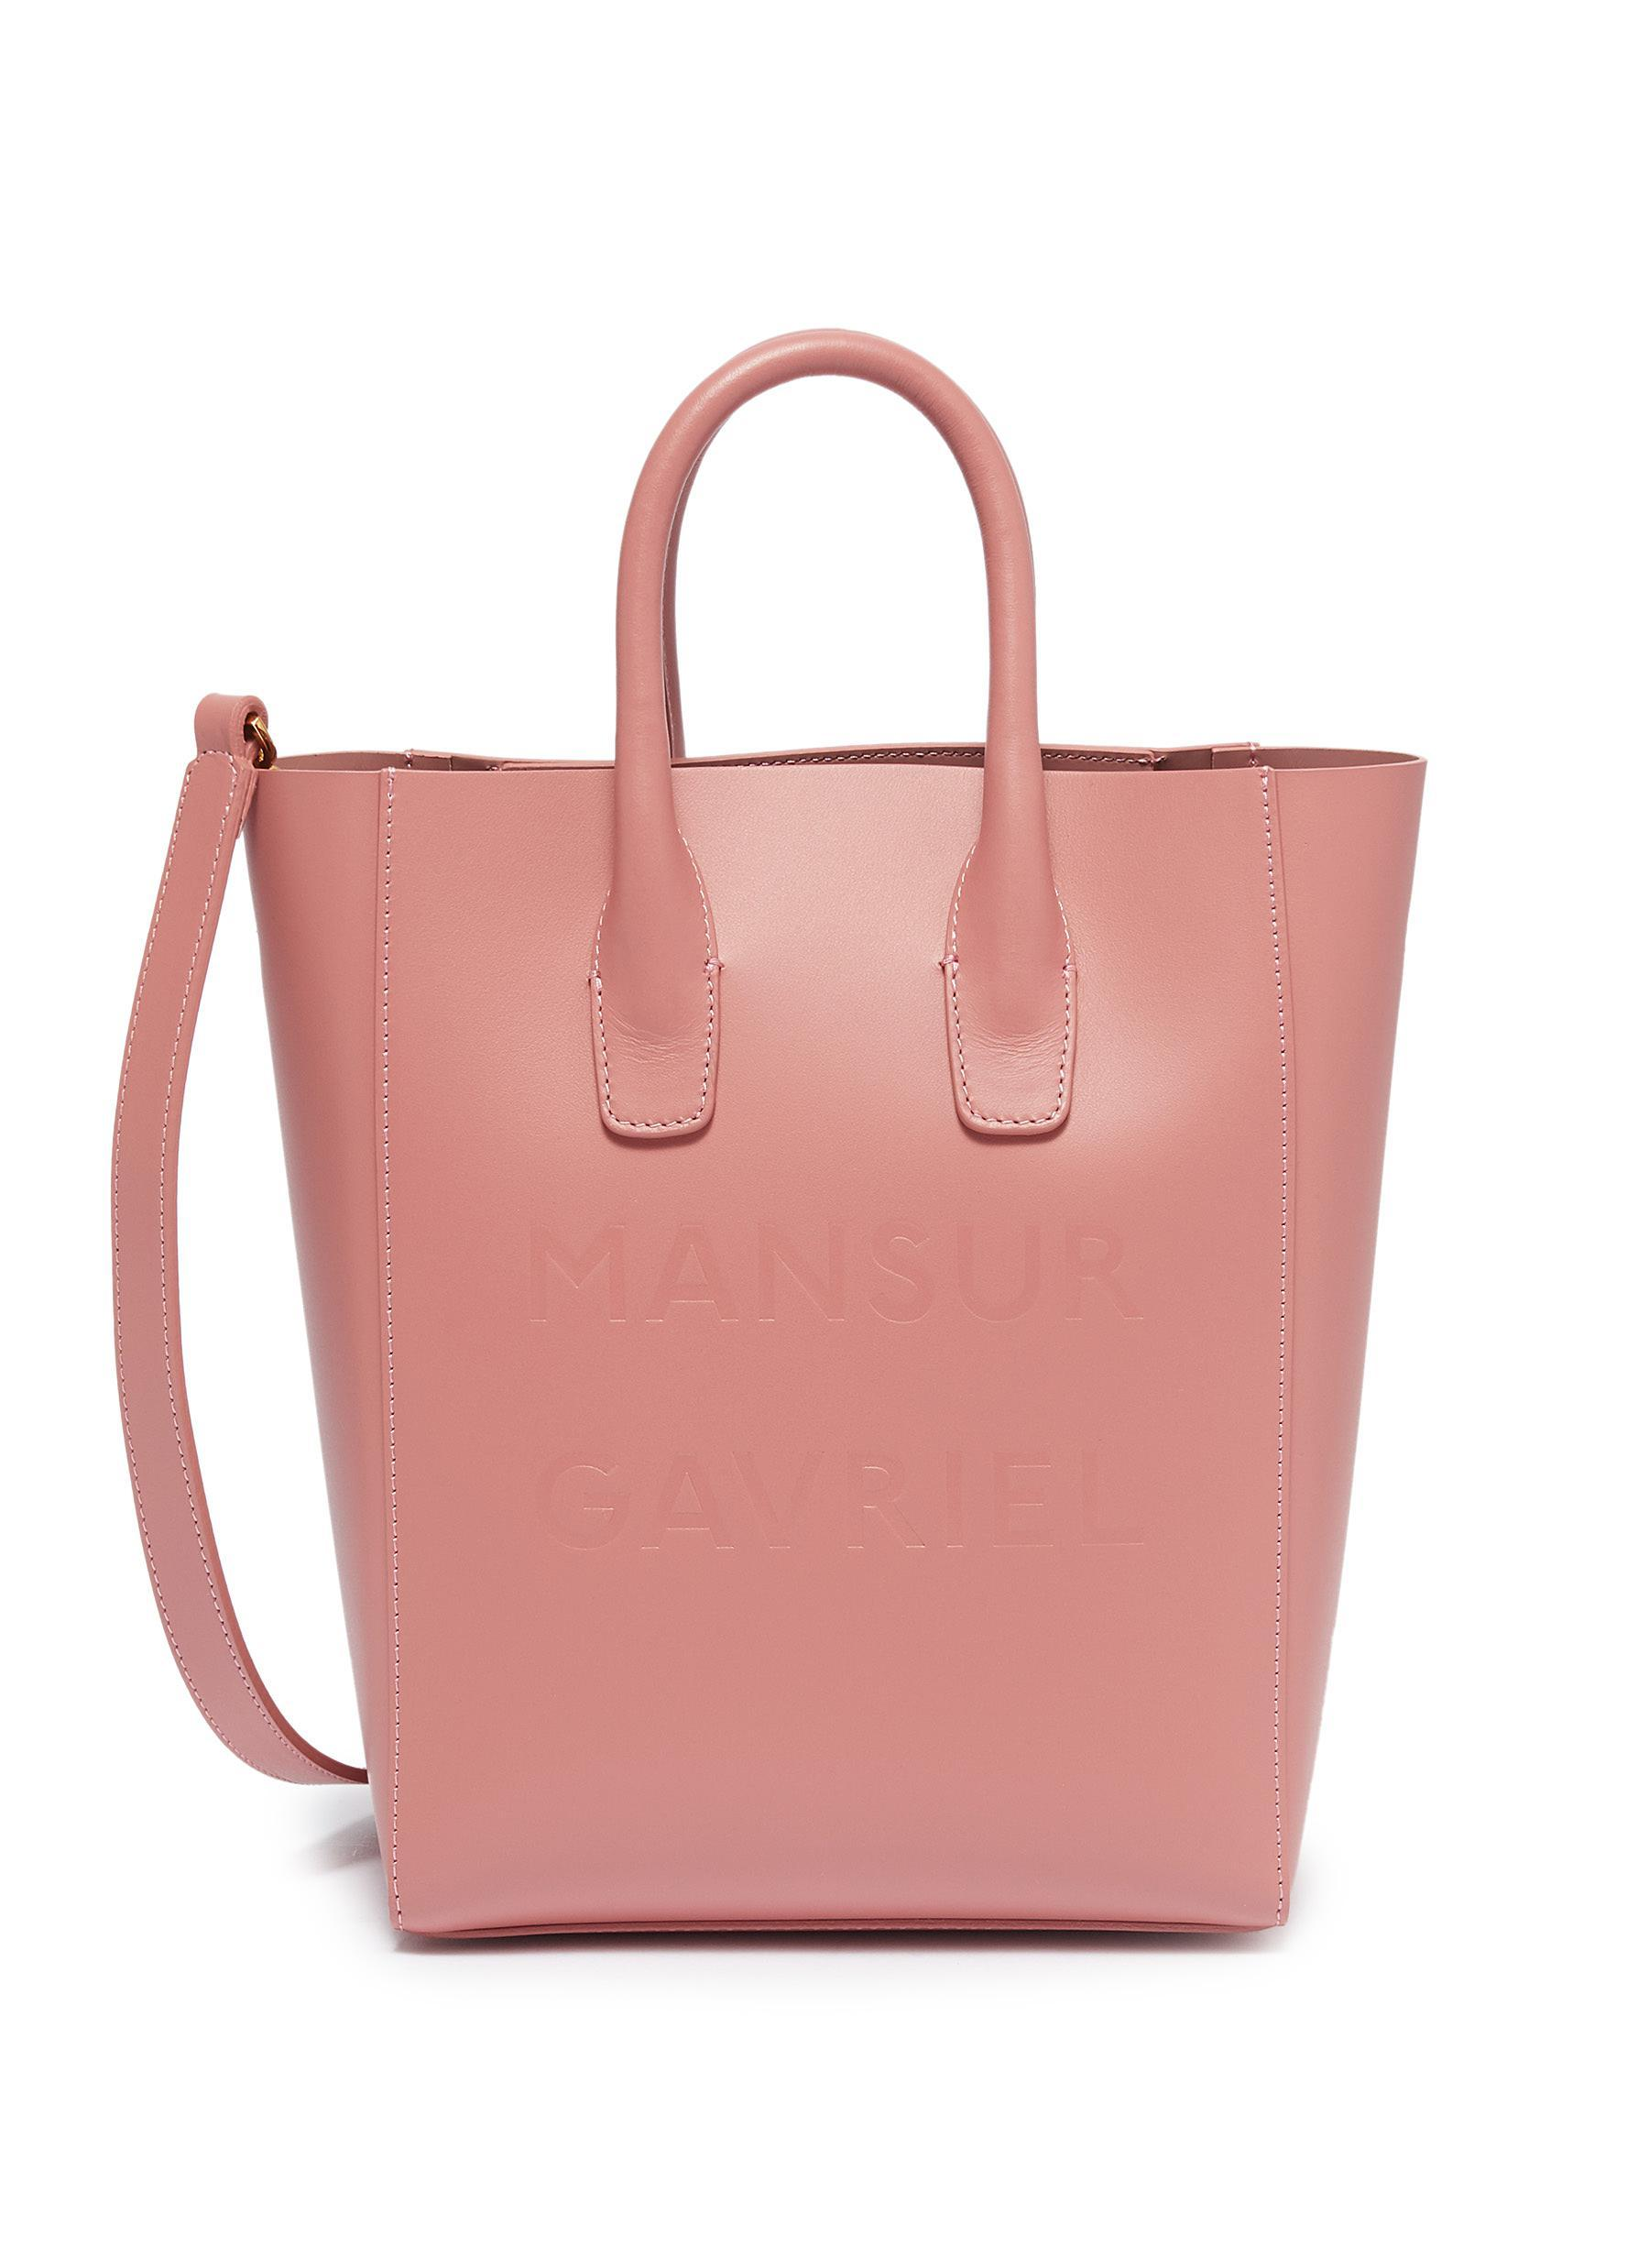 c594763054a Mansur Gavriel  ns  Mini Leather Tote in Pink - Lyst